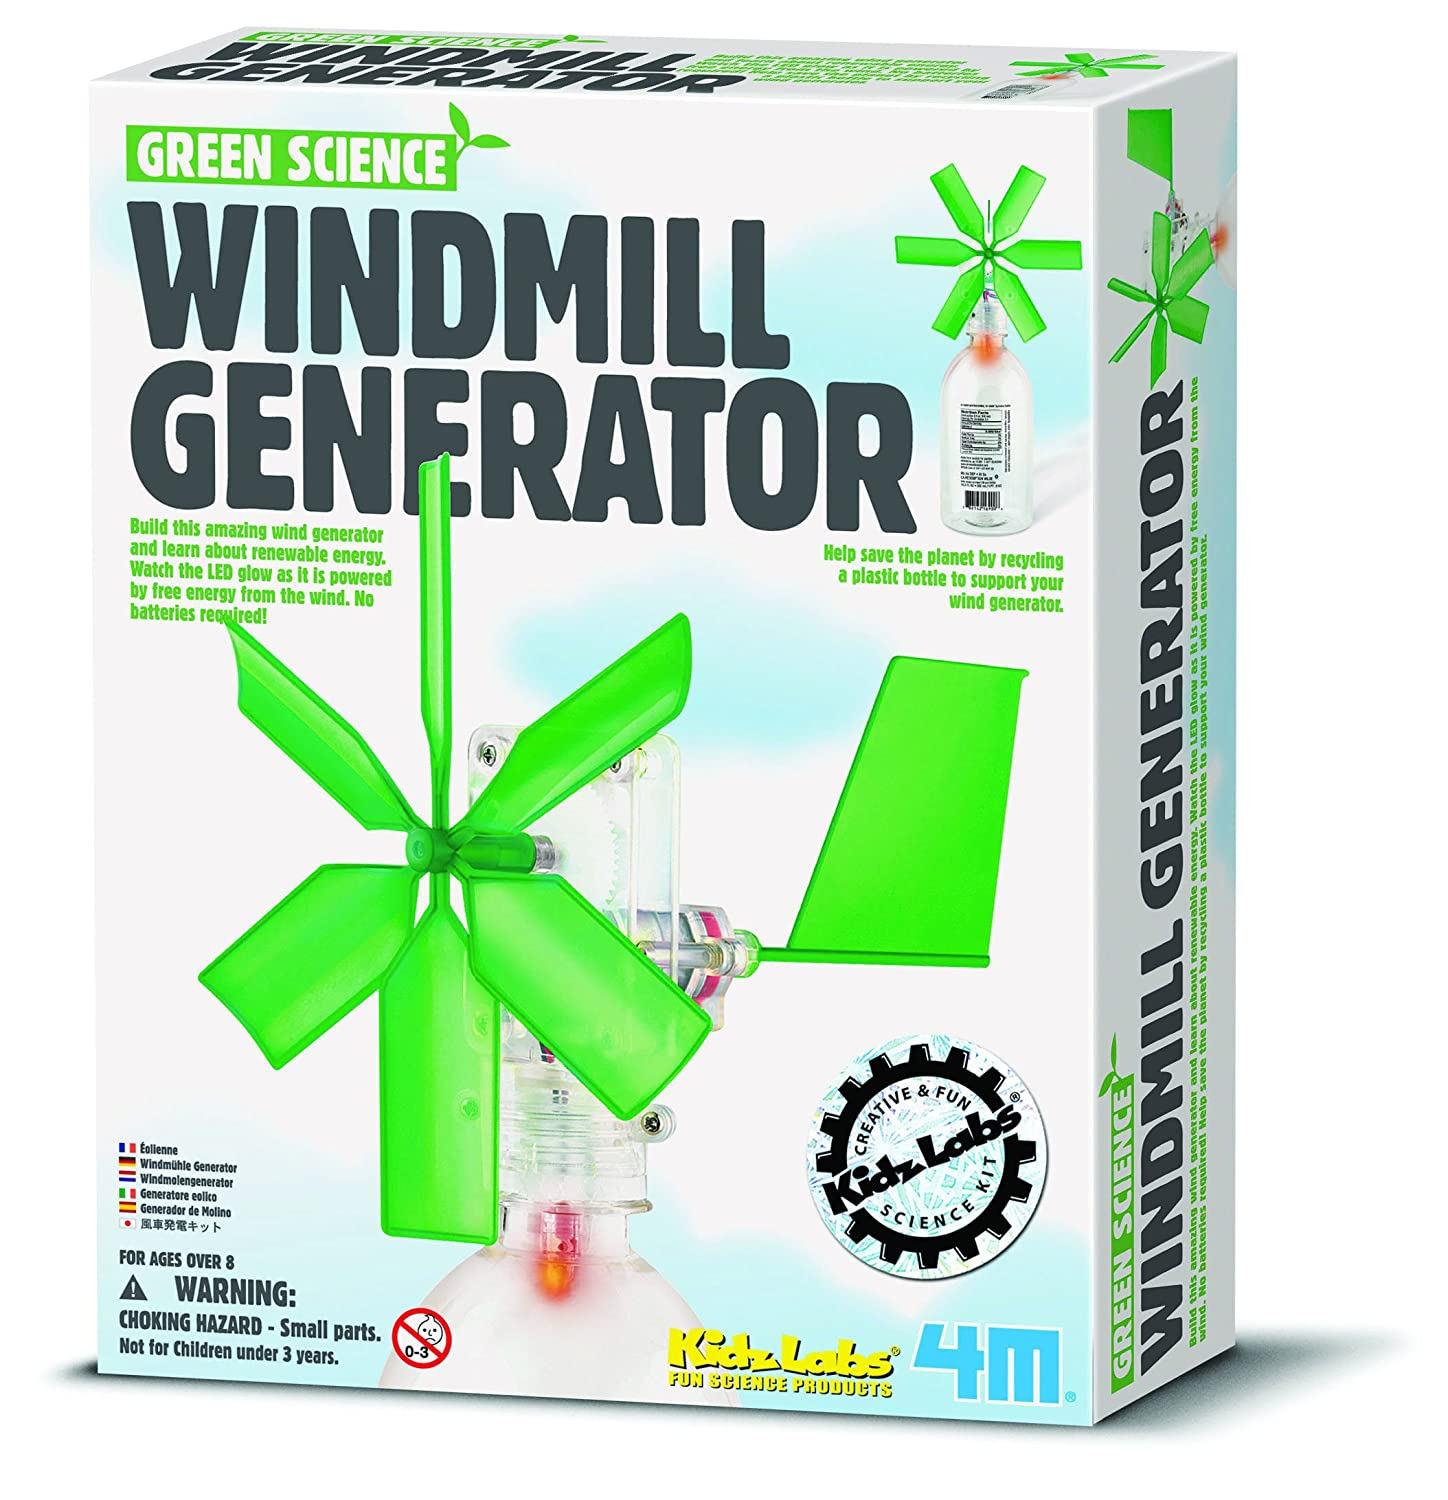 Amazon.com: Green Science Windmill Generator by Toysmith: Toys & Games